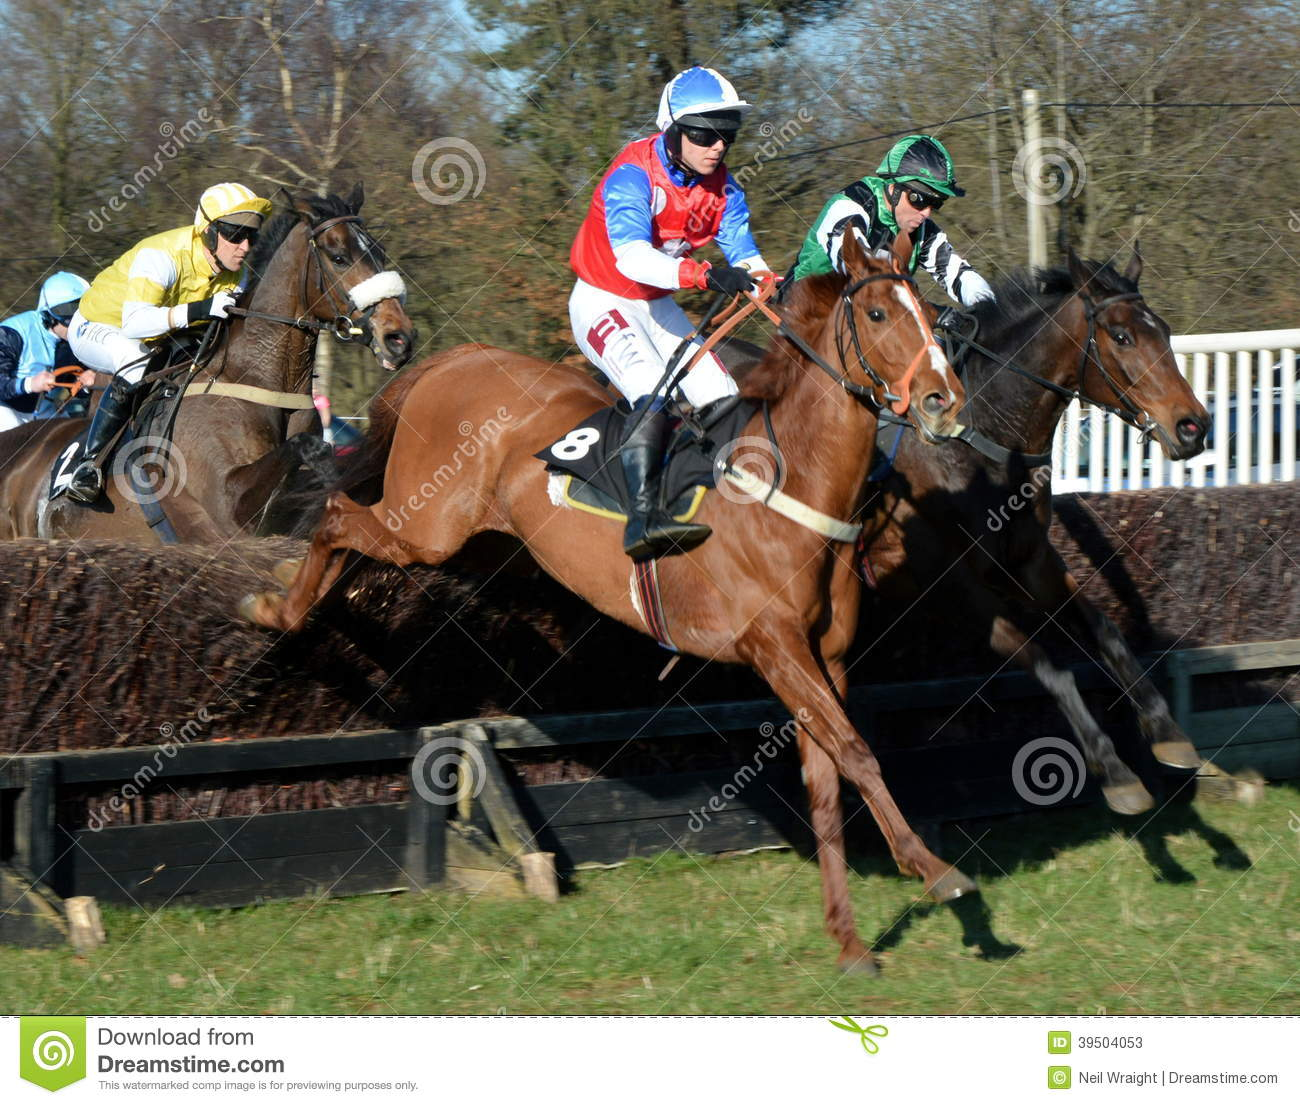 Horse racing over fences